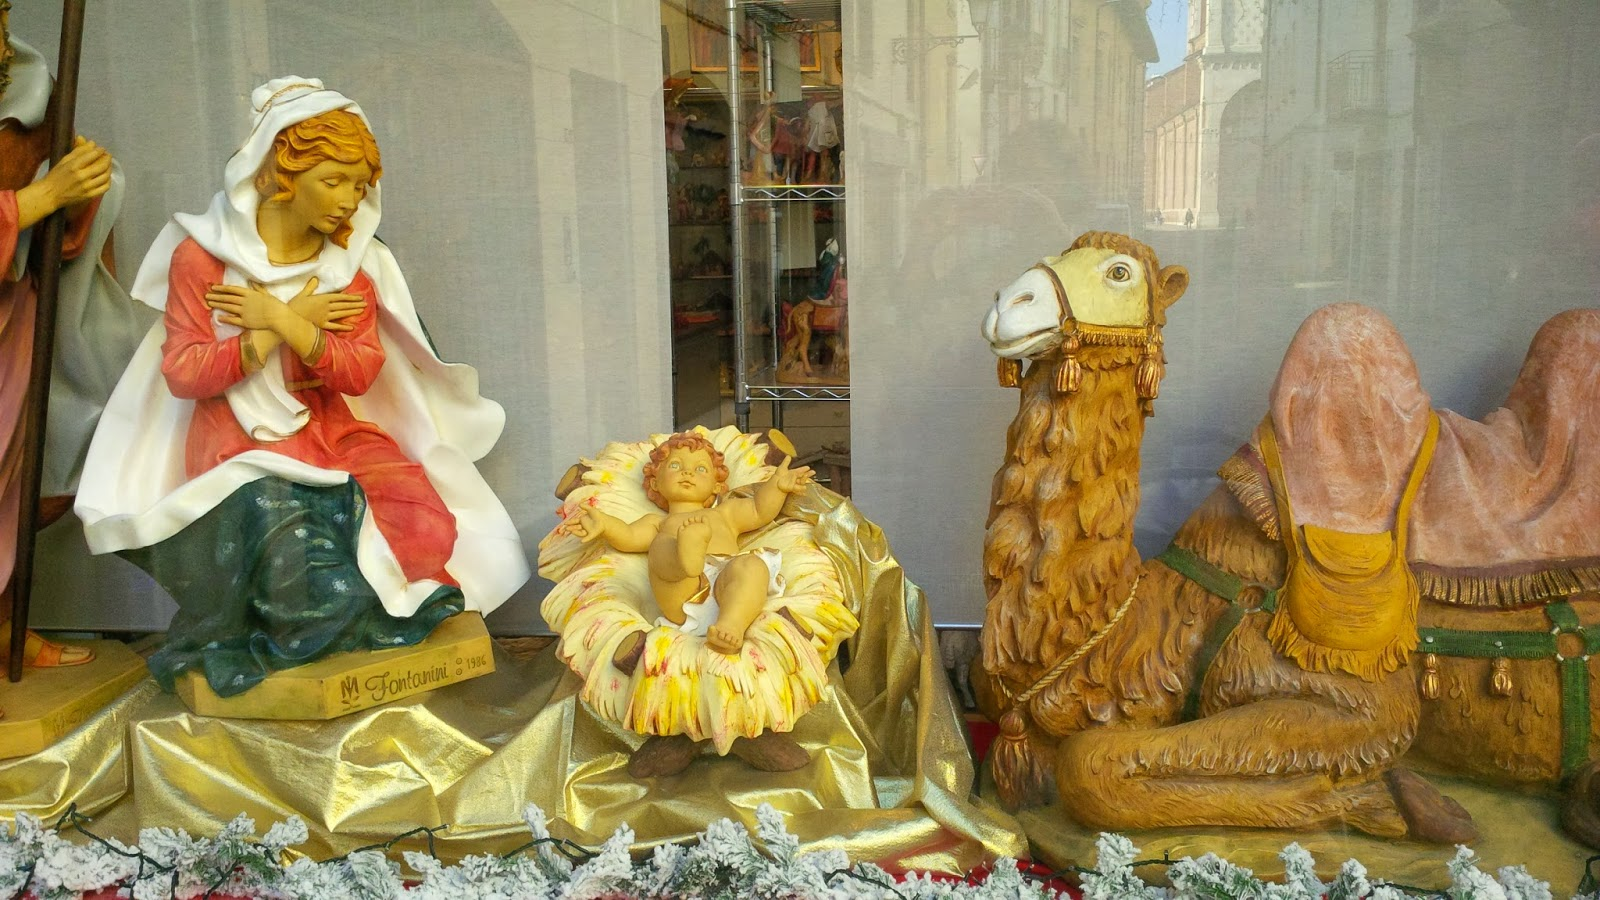 A blue-eyed flame-haired baby Jesus in a Biblical window display in Vicenza